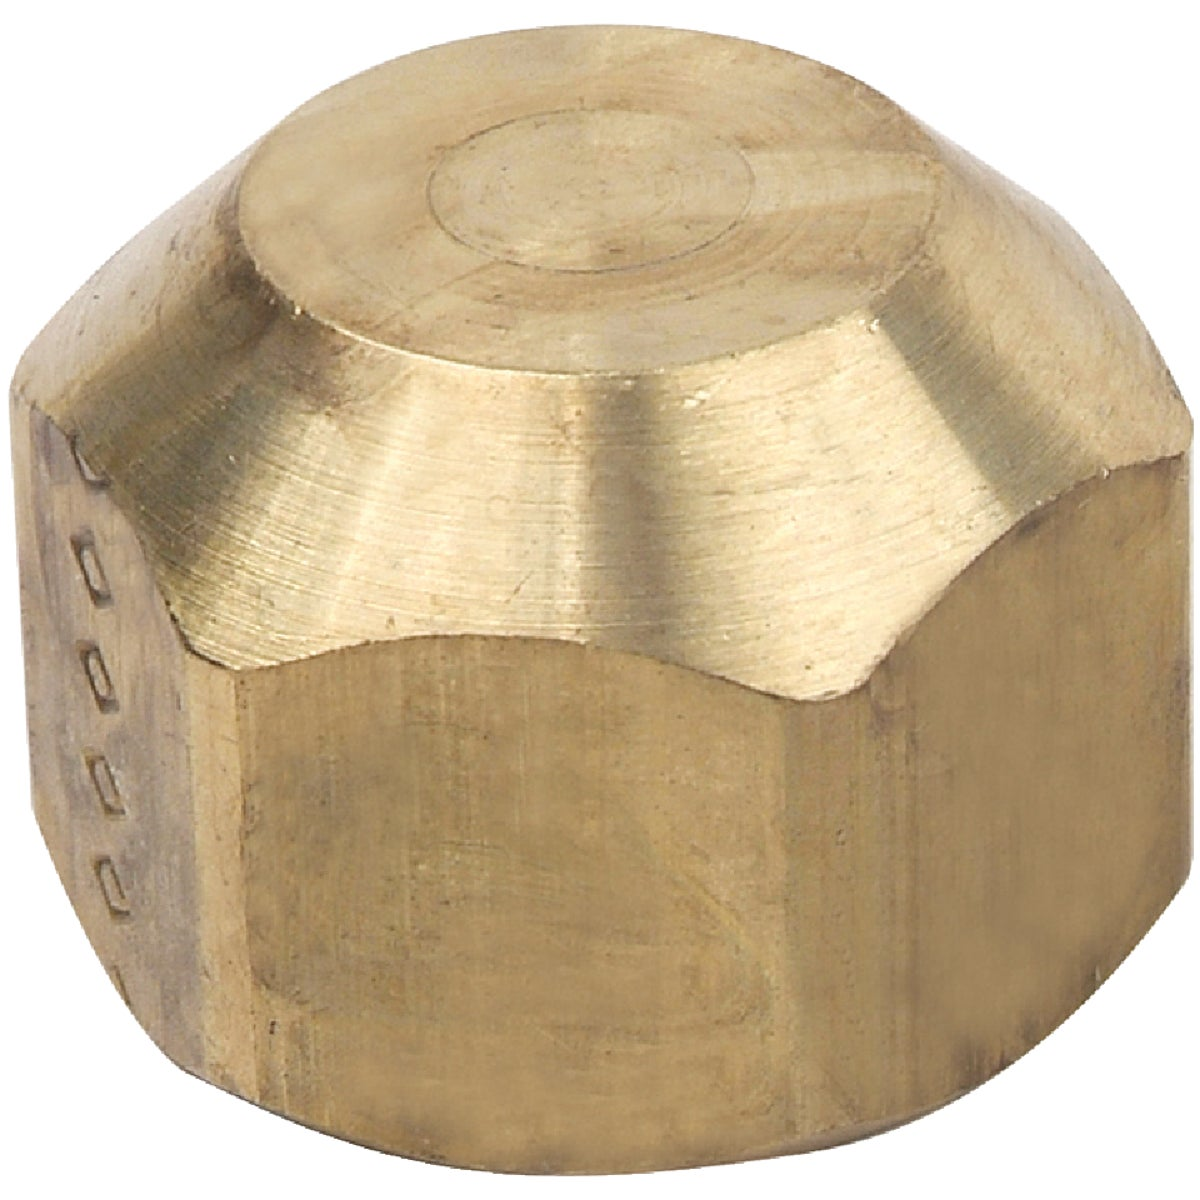 "5/8"" OD GAS FLARE CAP - M40-10 P by Brass Craft"